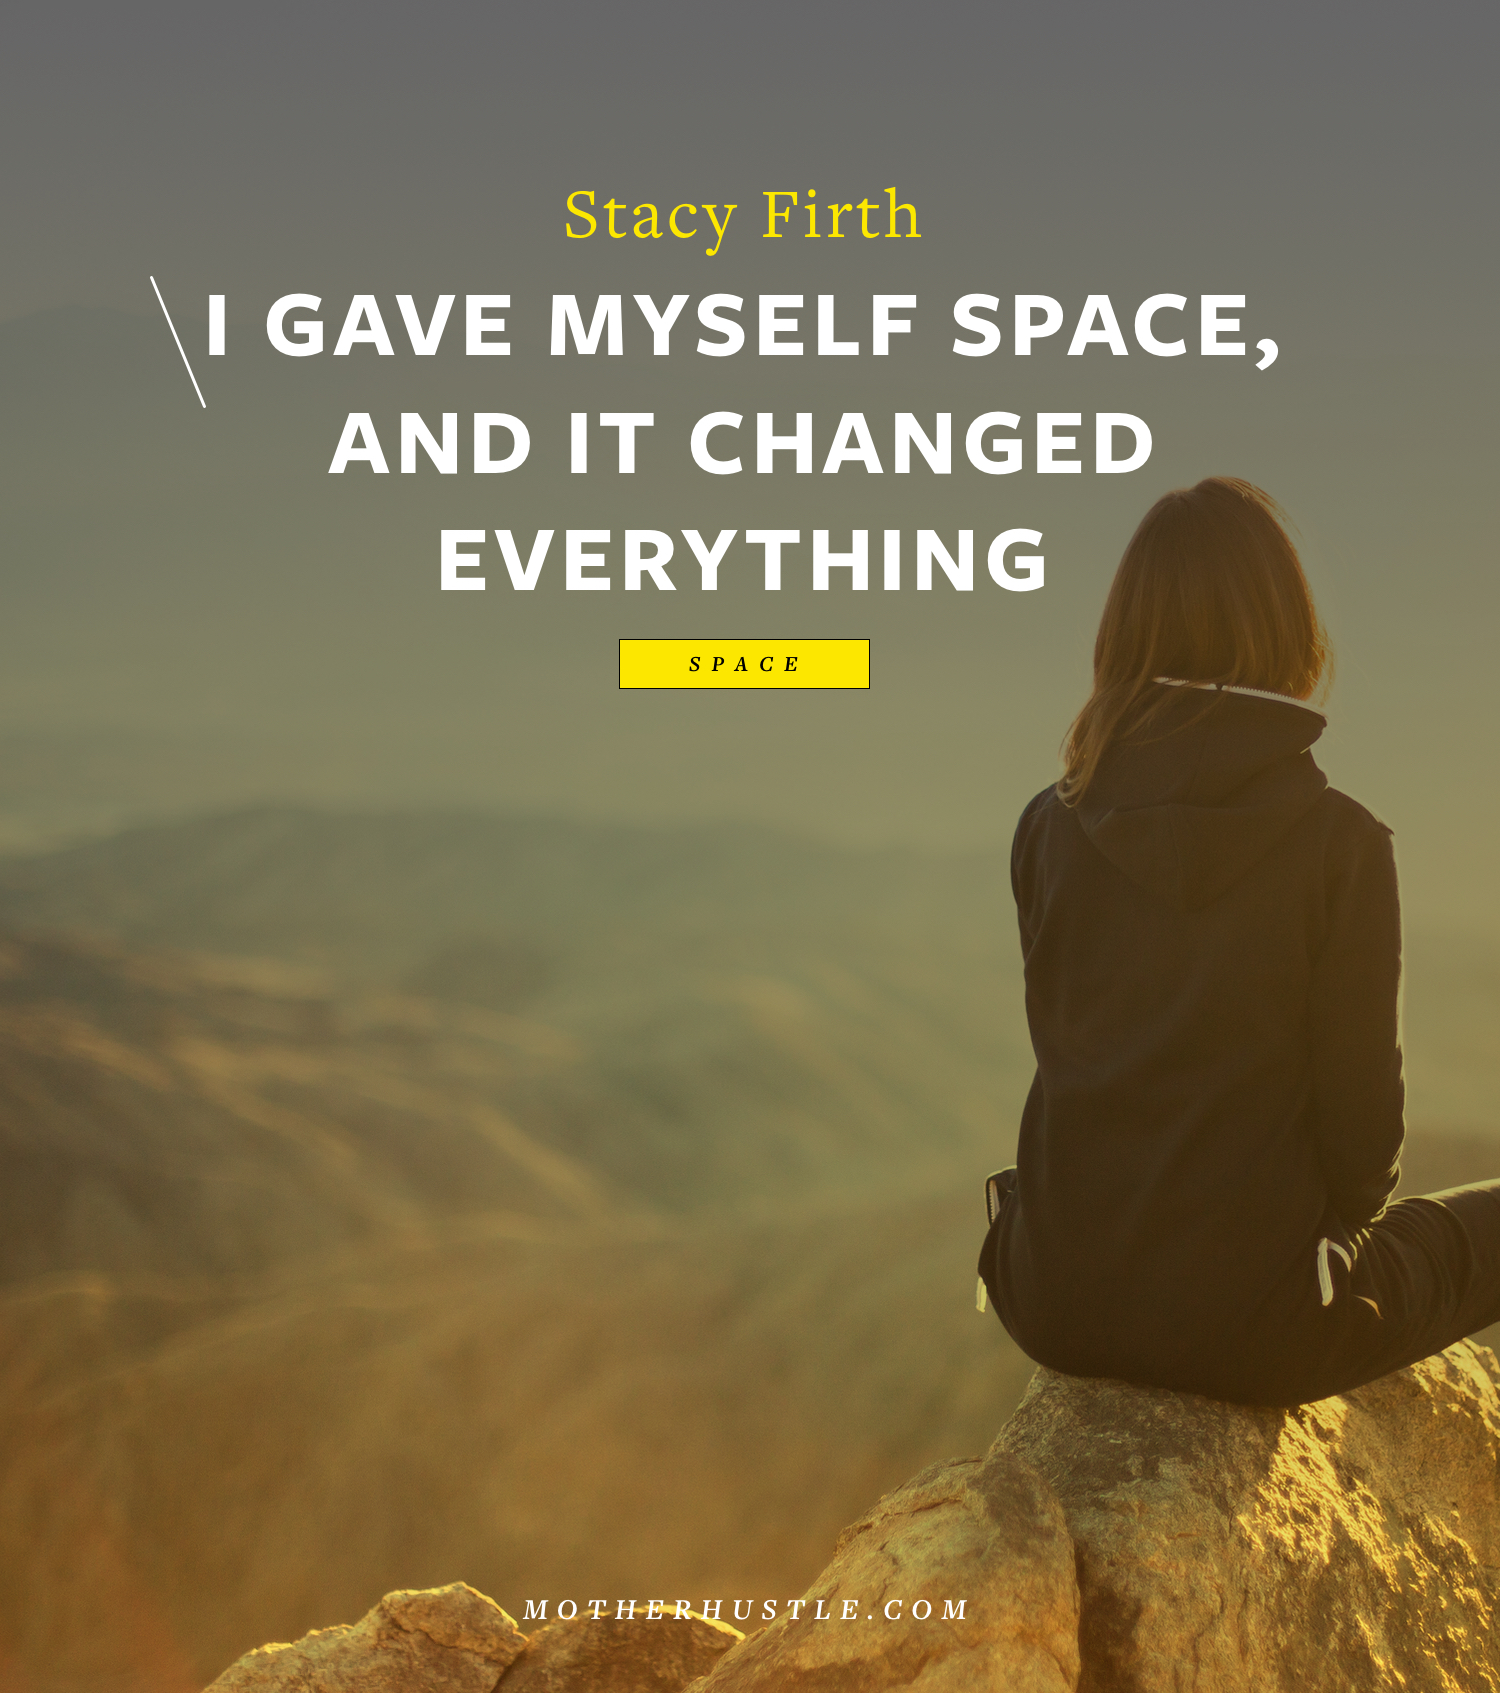 I Gave Myself Space and it Changed Everything - BY Stacy Firth for MotherHustle